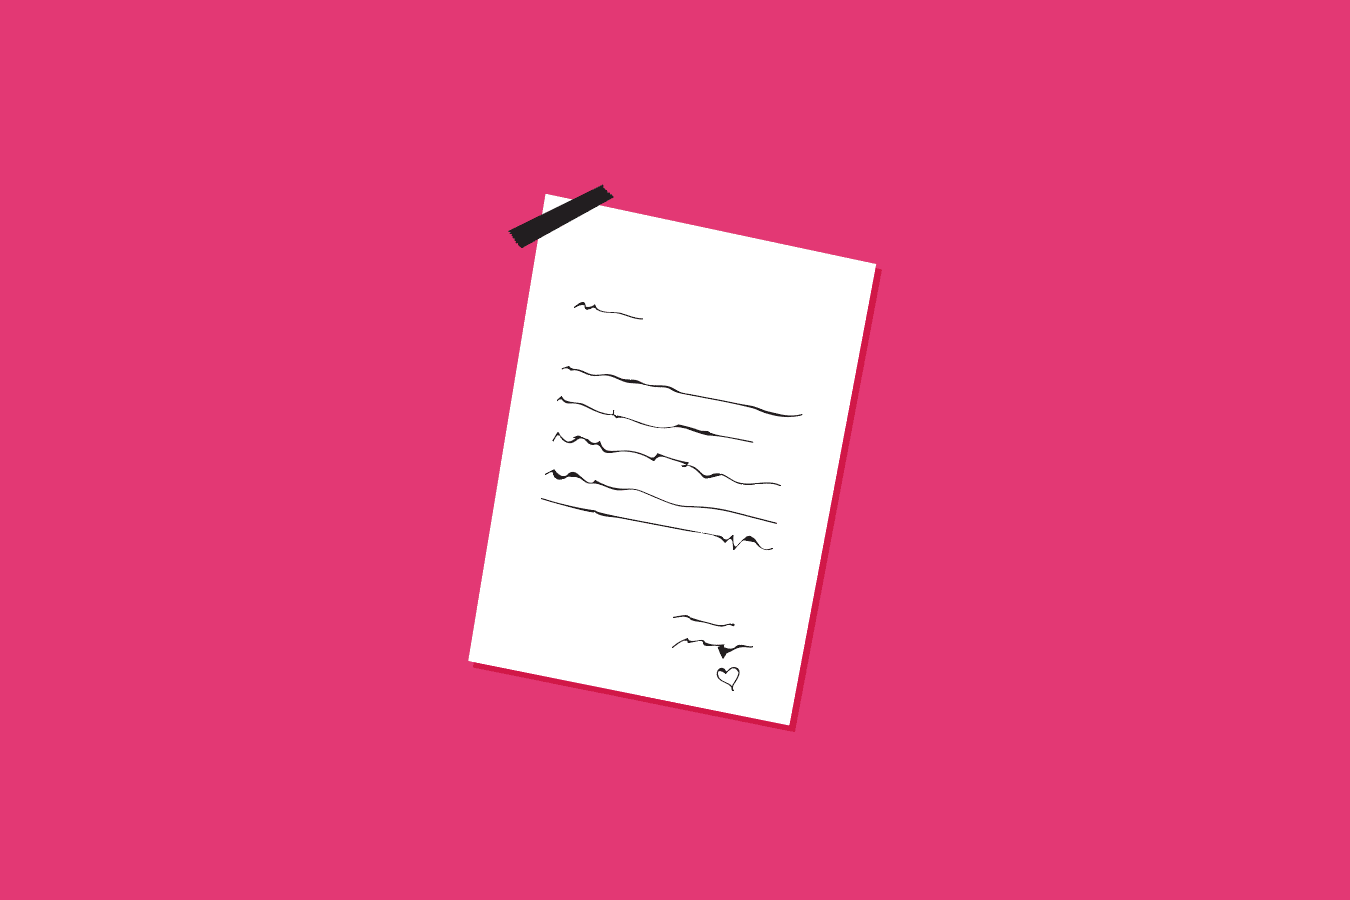 Illustration of a letter on pink background